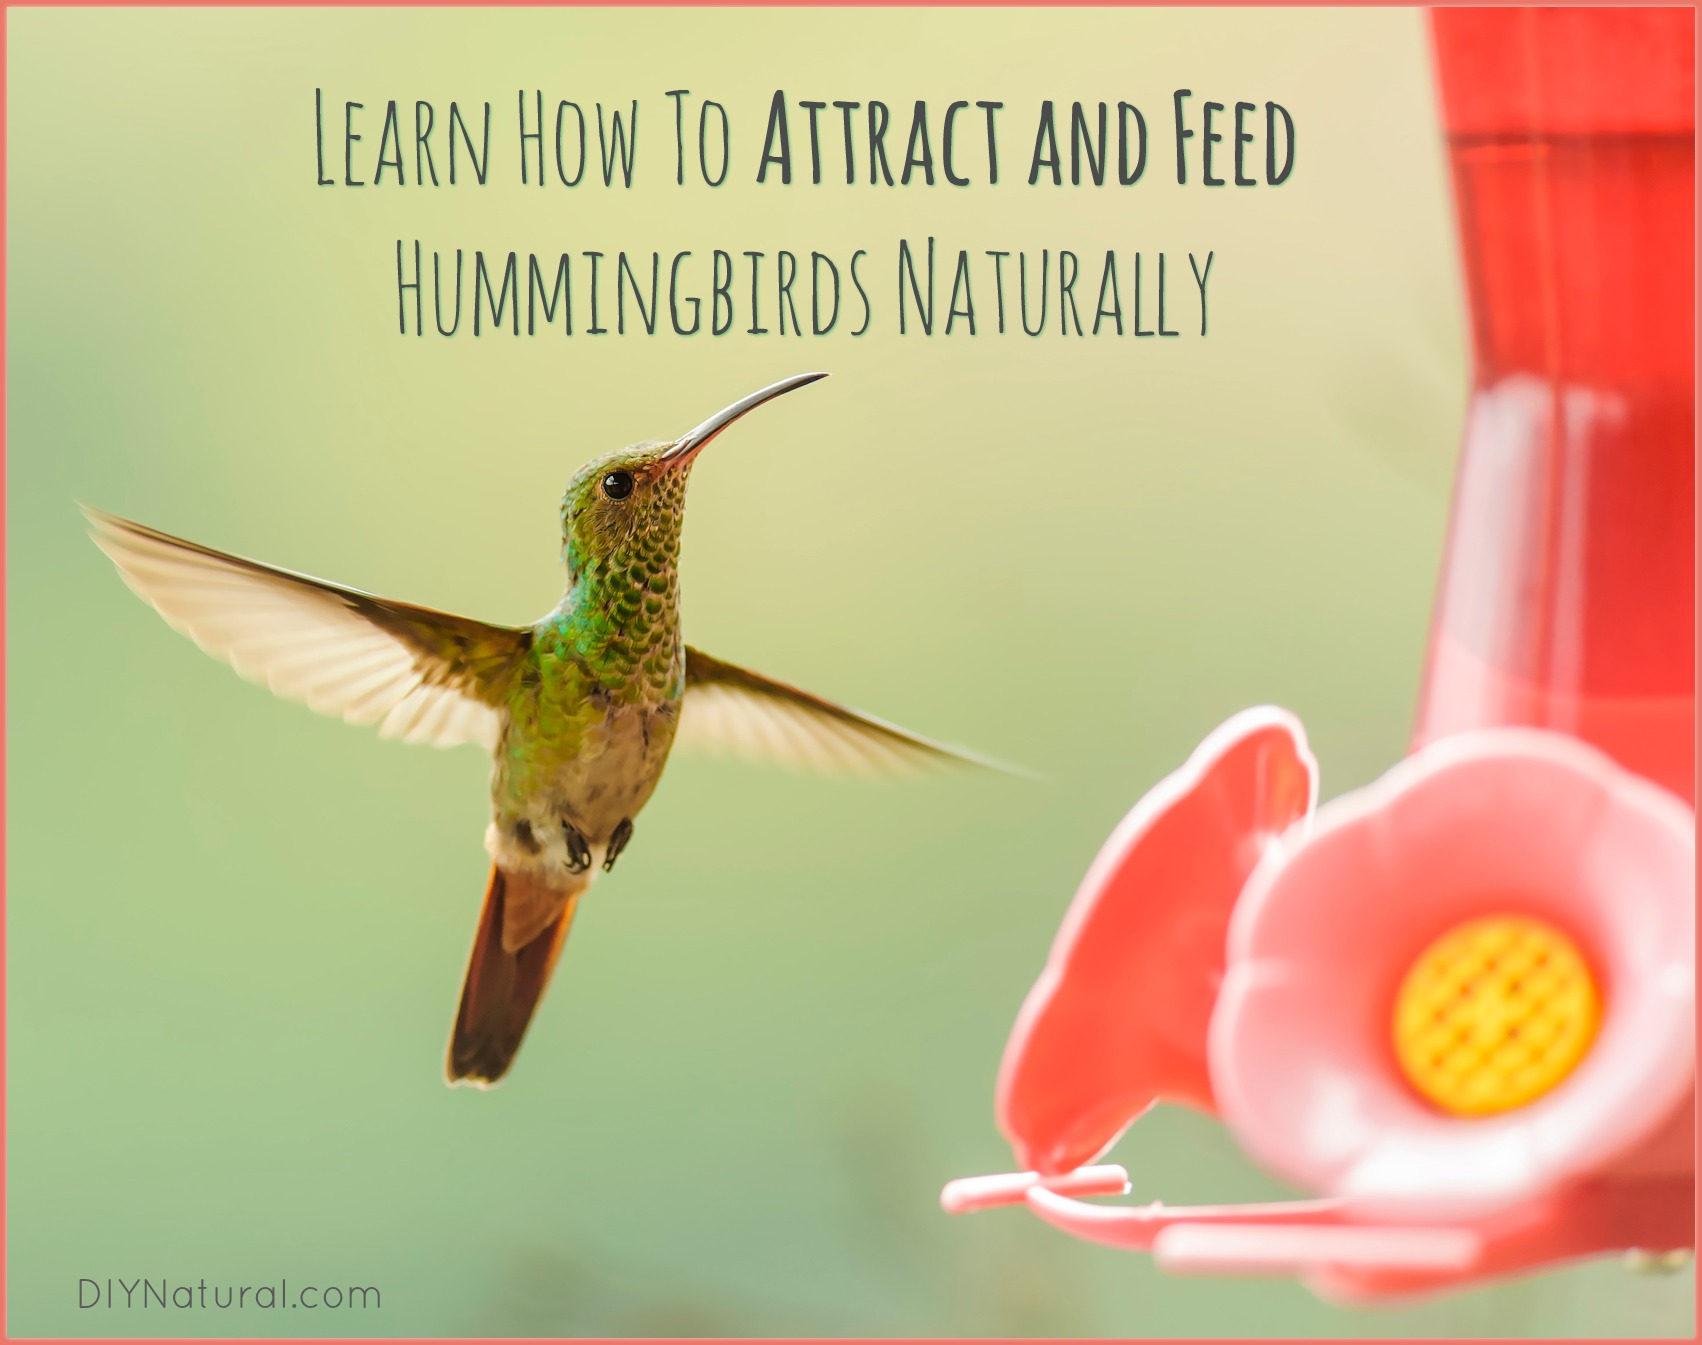 Making Hummingbird Nectar At Home